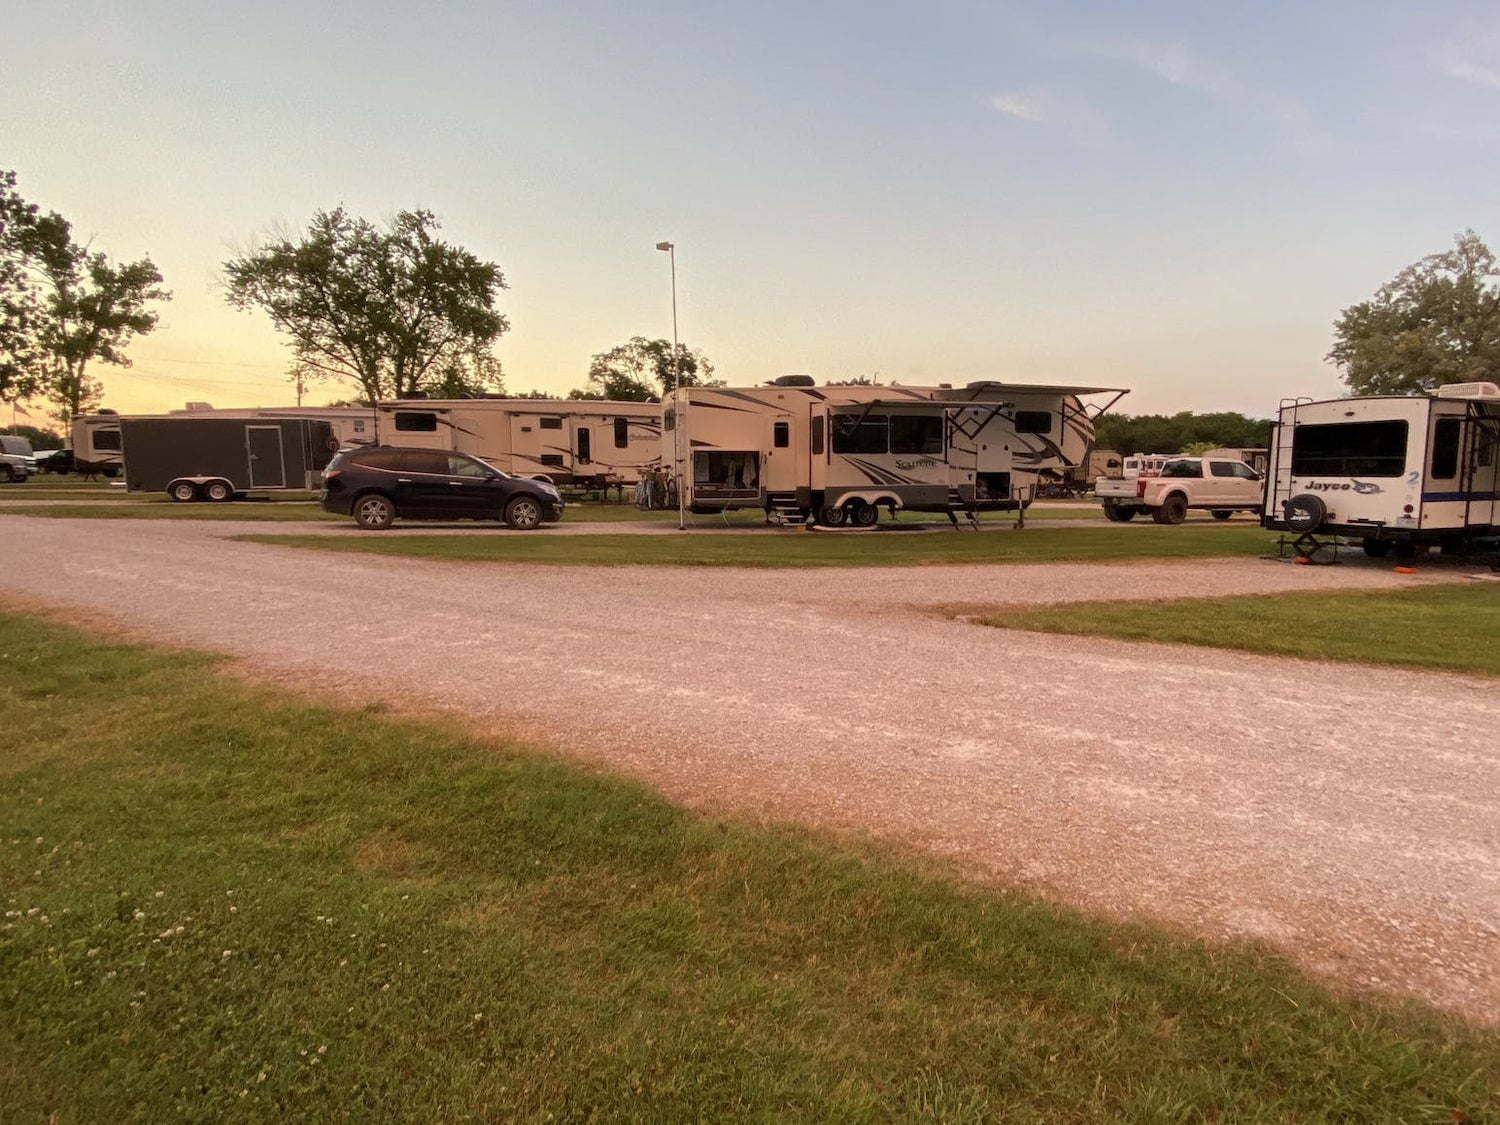 row of rvs at campsite at sunset